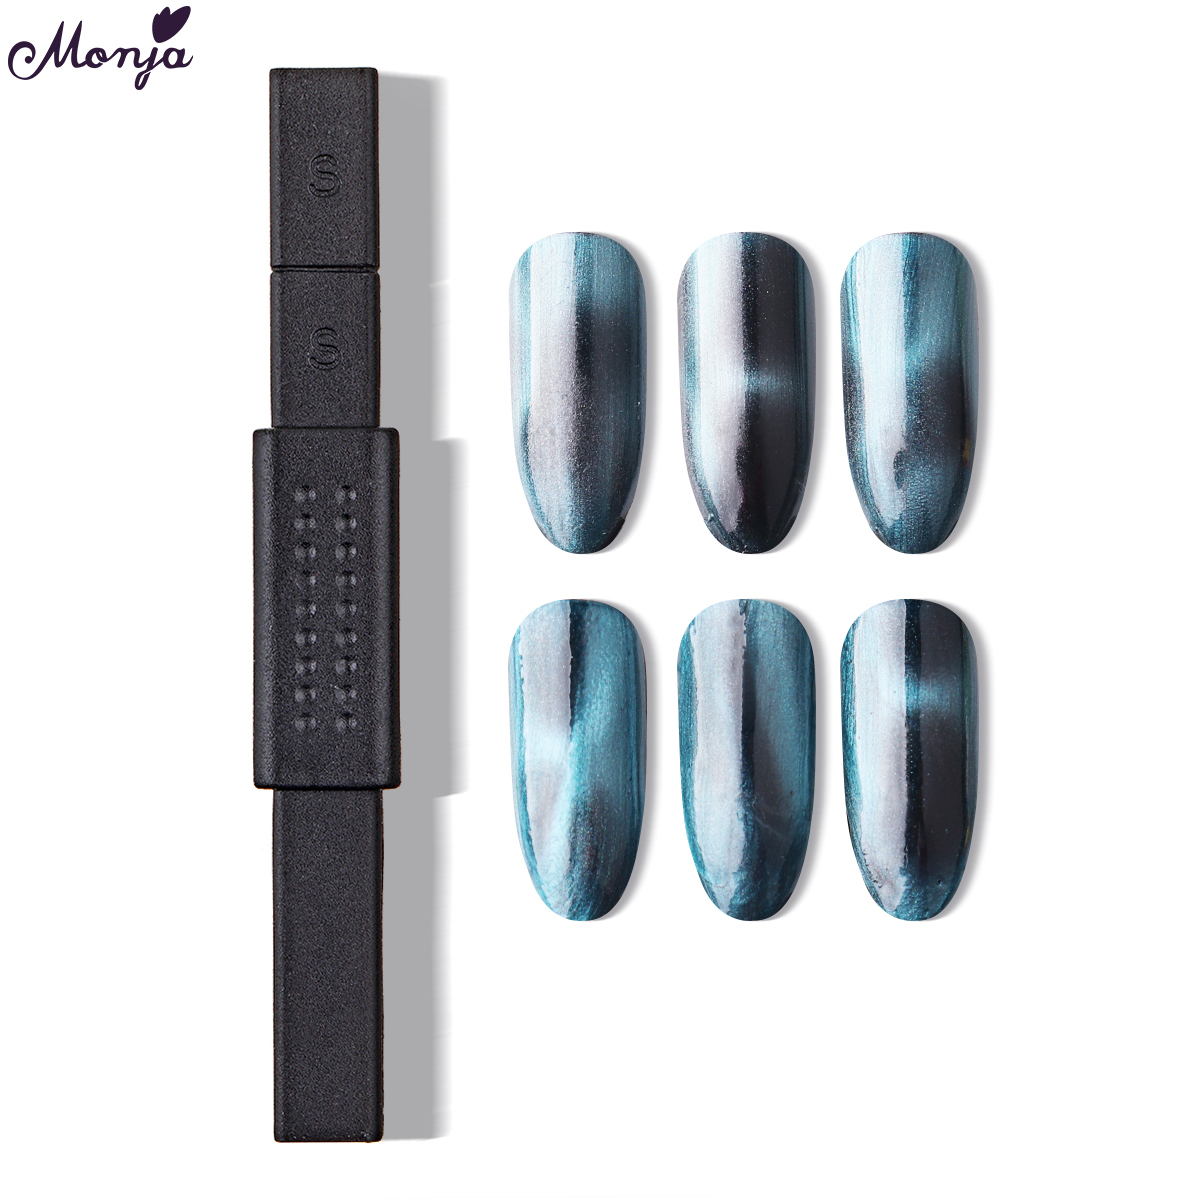 Monja Dual End Nail Art Strong Magnetic Stick 3D Cat Eye Effect Magnet Nail Polish Painting UV Lamp Gel Varnish Manicure Tool